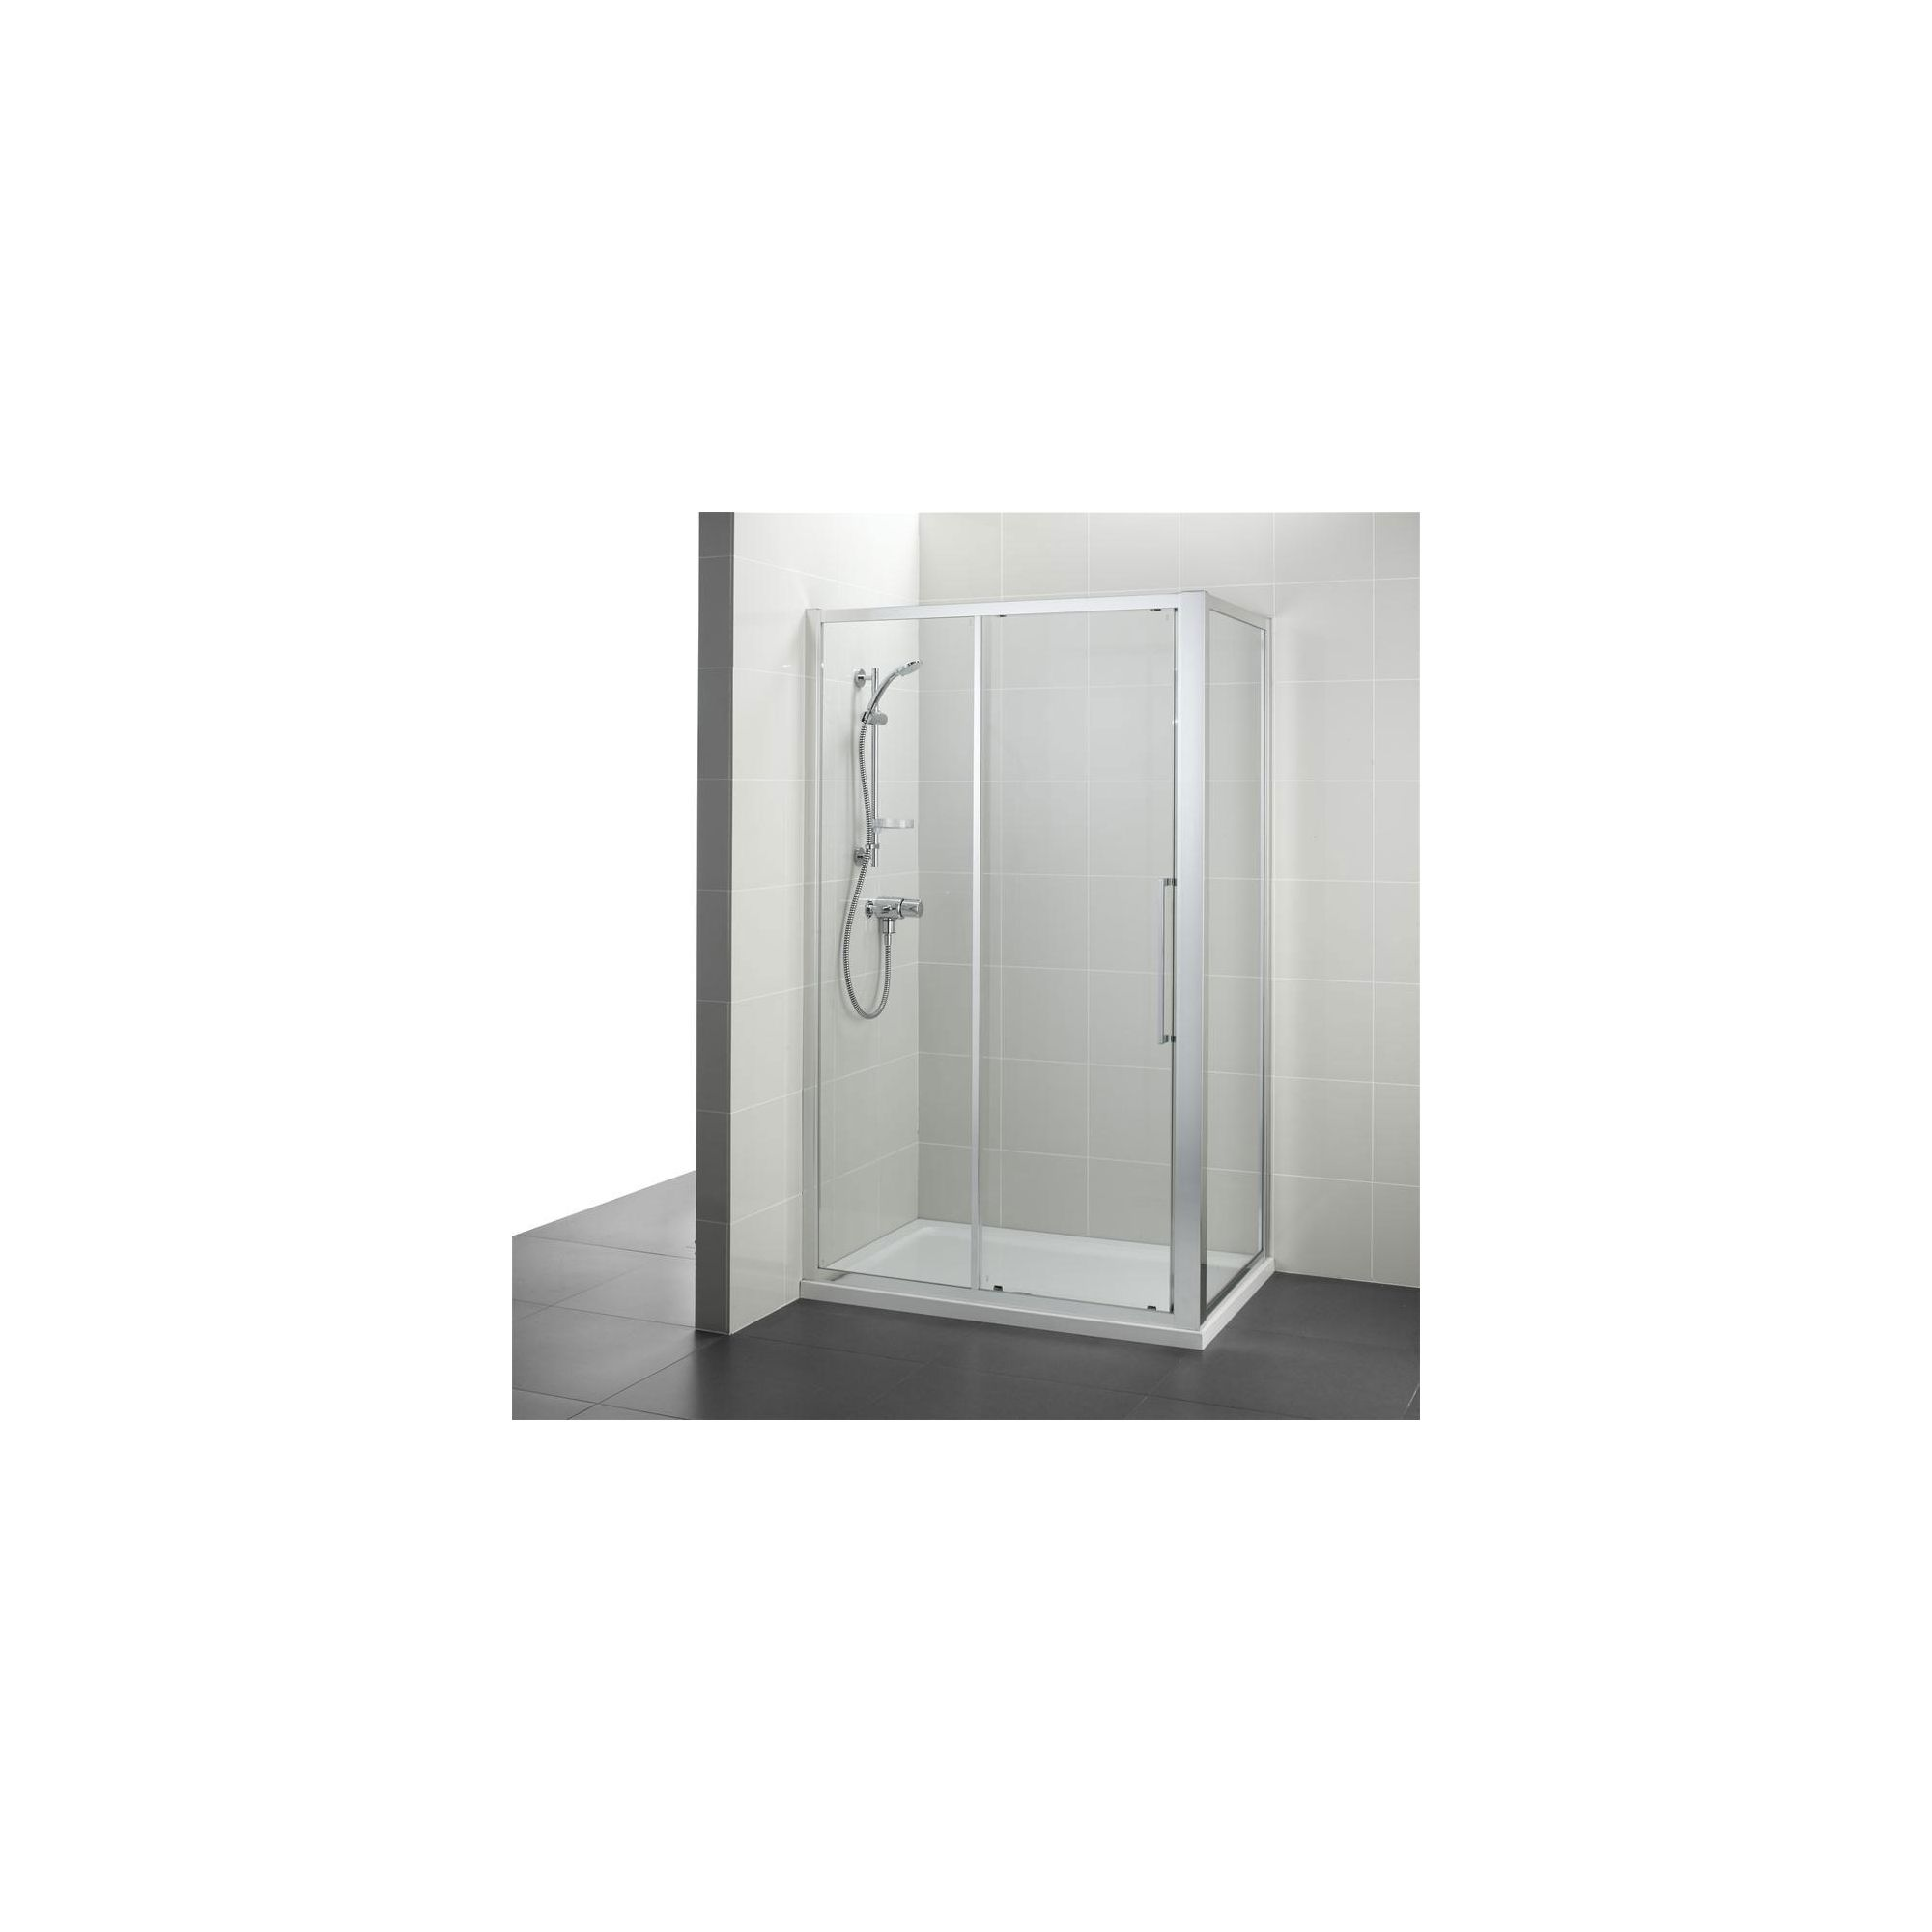 Ideal Standard Kubo Sliding Door Shower Enclosure, 1200mm x 900mm, Bright Silver Frame, Low Profile Tray at Tescos Direct